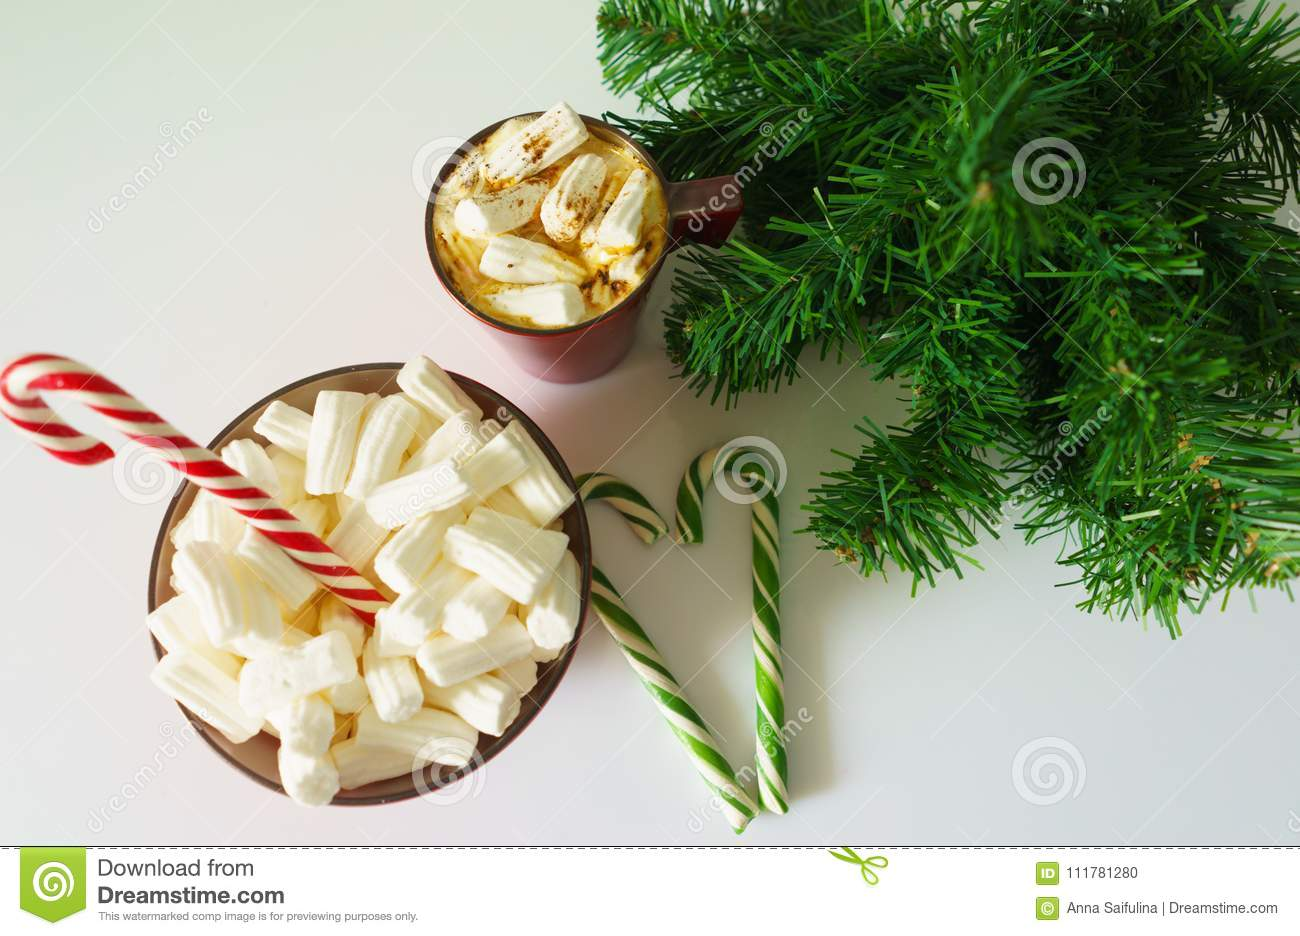 Christmas background, greeting card with a Cup of coffee or chocolate with marshmallows,candy canes, a red plate and tree branches